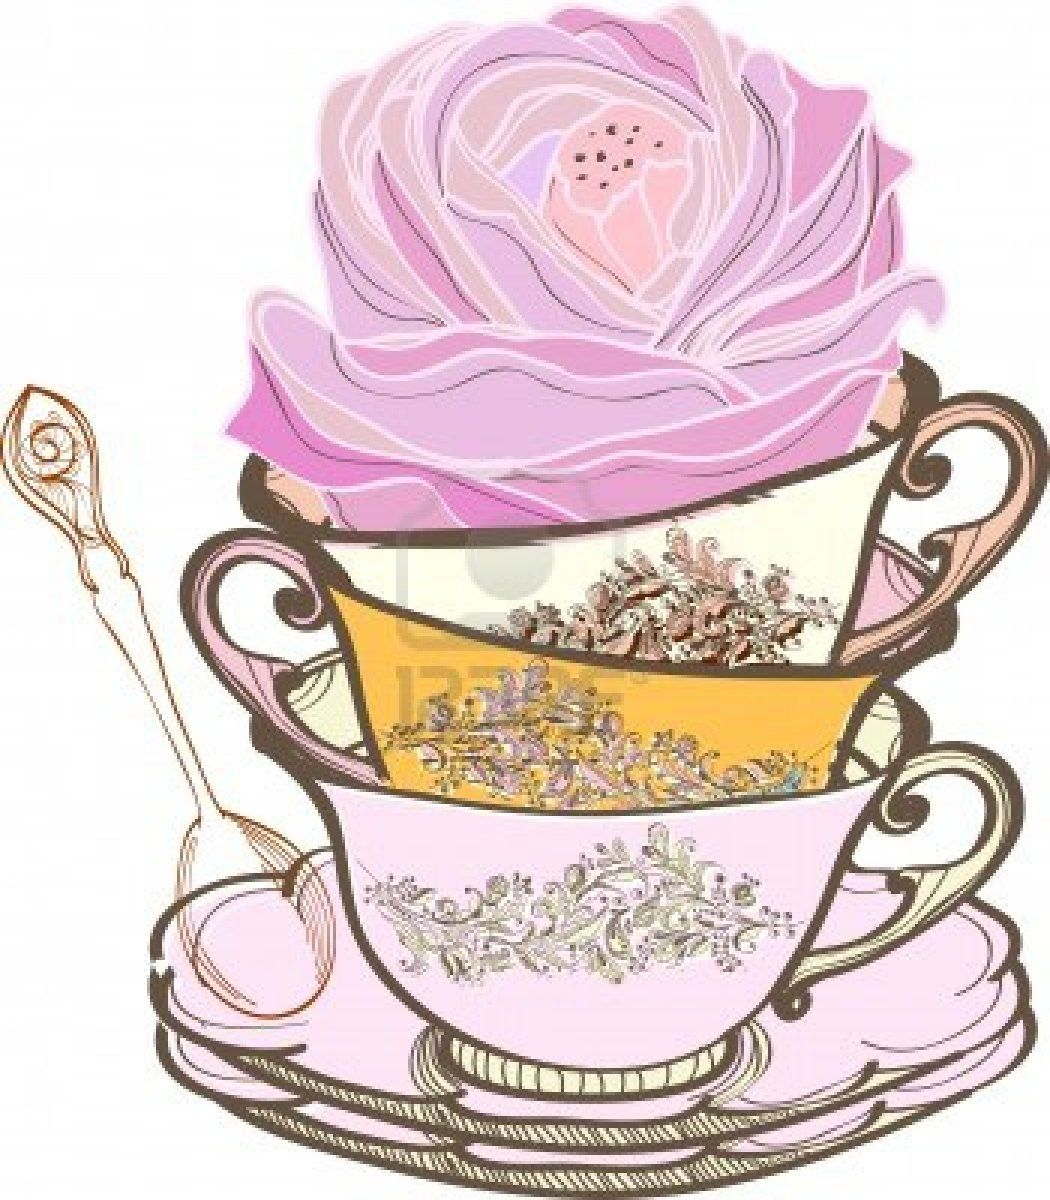 Elegant tea party invitation template with teacups cartoon vector - Tea Party Tea Cup Background With Spoon And Flower Illustration